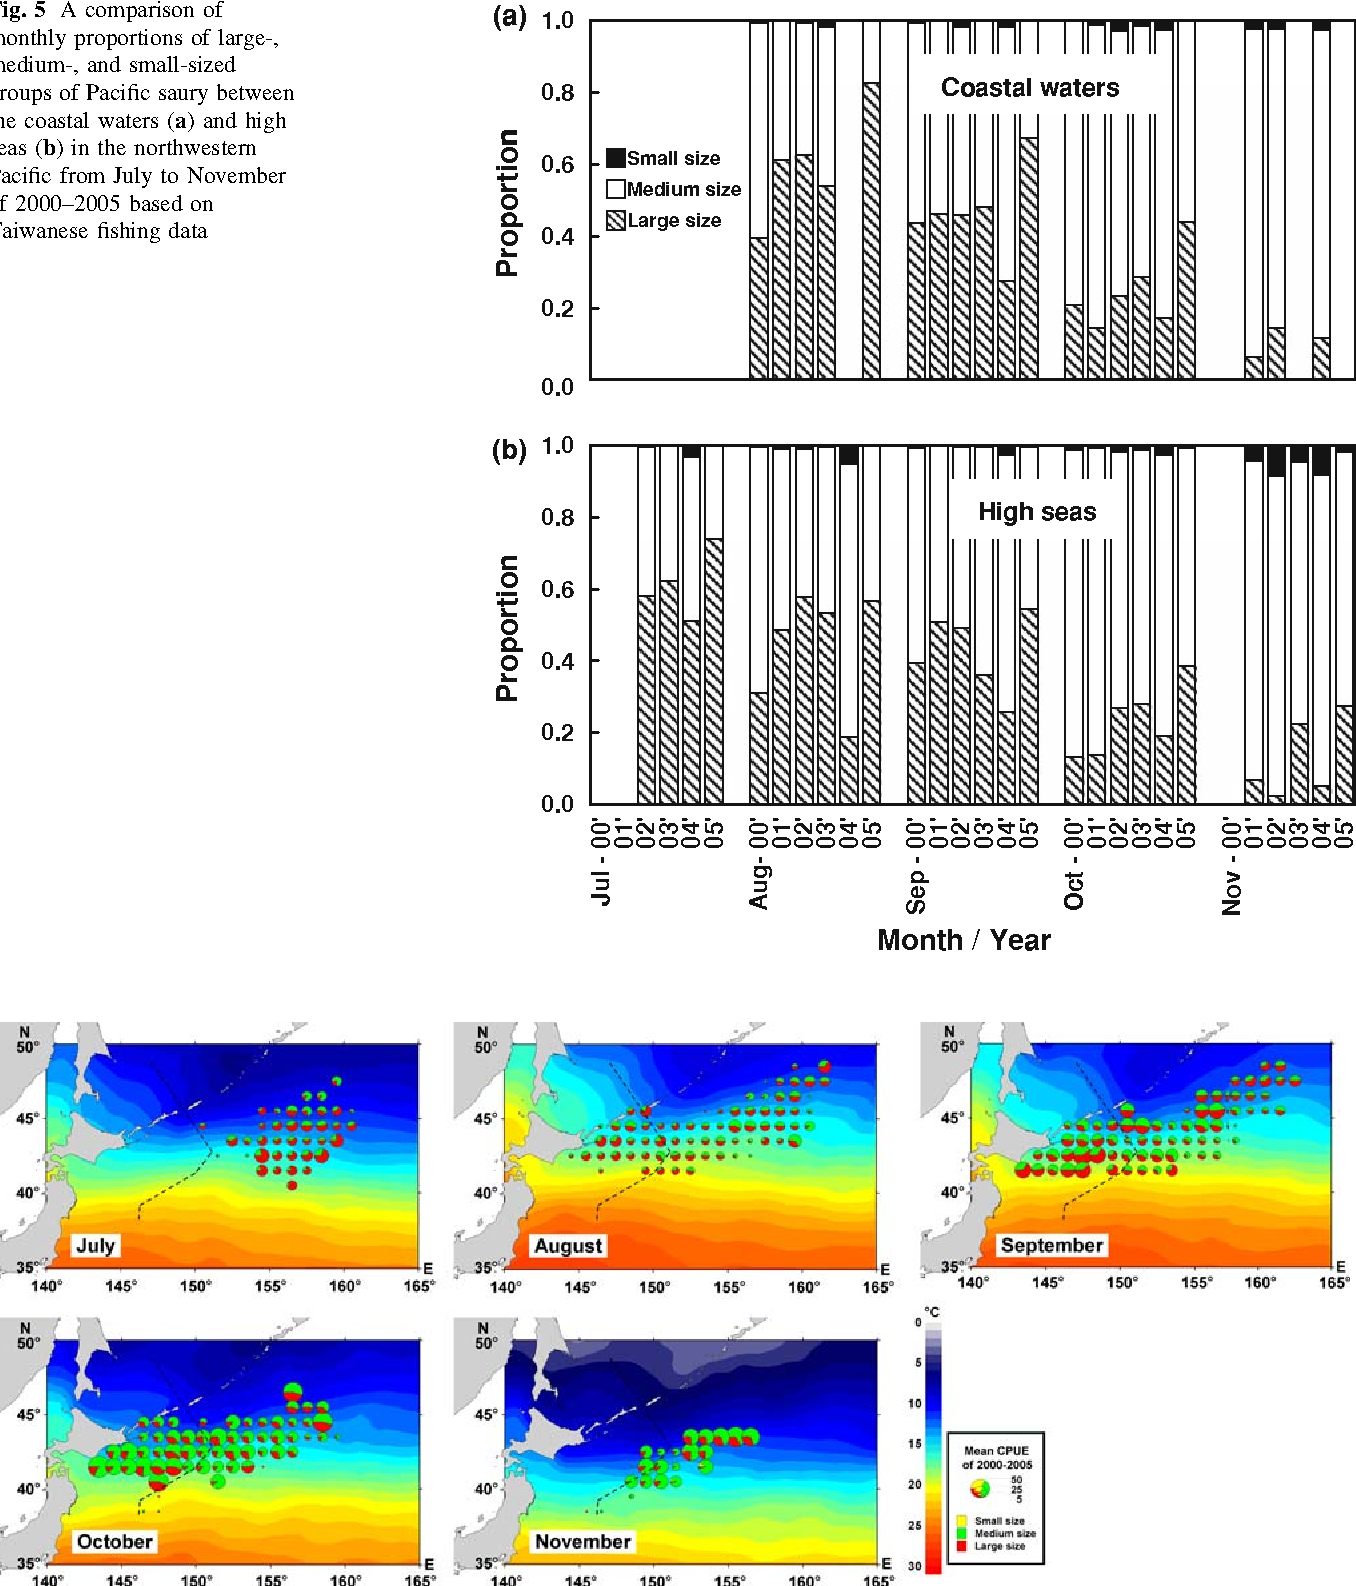 Fig. 5 A comparison of monthly proportions of large-, medium-, and small-sized groups of Pacific saury between the coastal waters (a) and high seas (b) in the northwestern Pacific from July to November of 2000–2005 based on Taiwanese fishing data